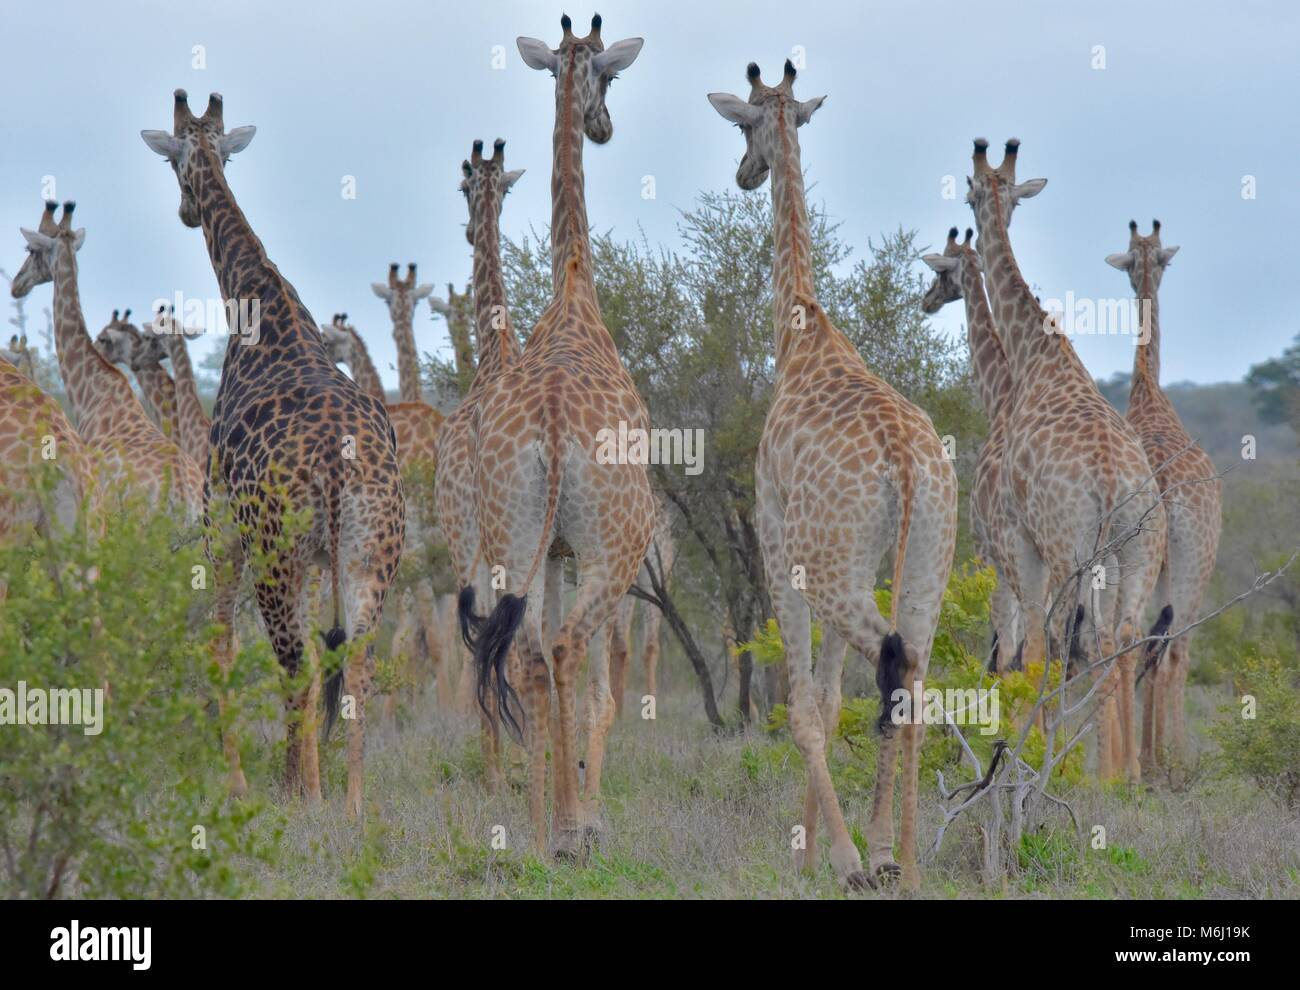 Kruger Park, South Africa. A wildlife and bird paradise. Herd of giraffe from behind. - Stock Image